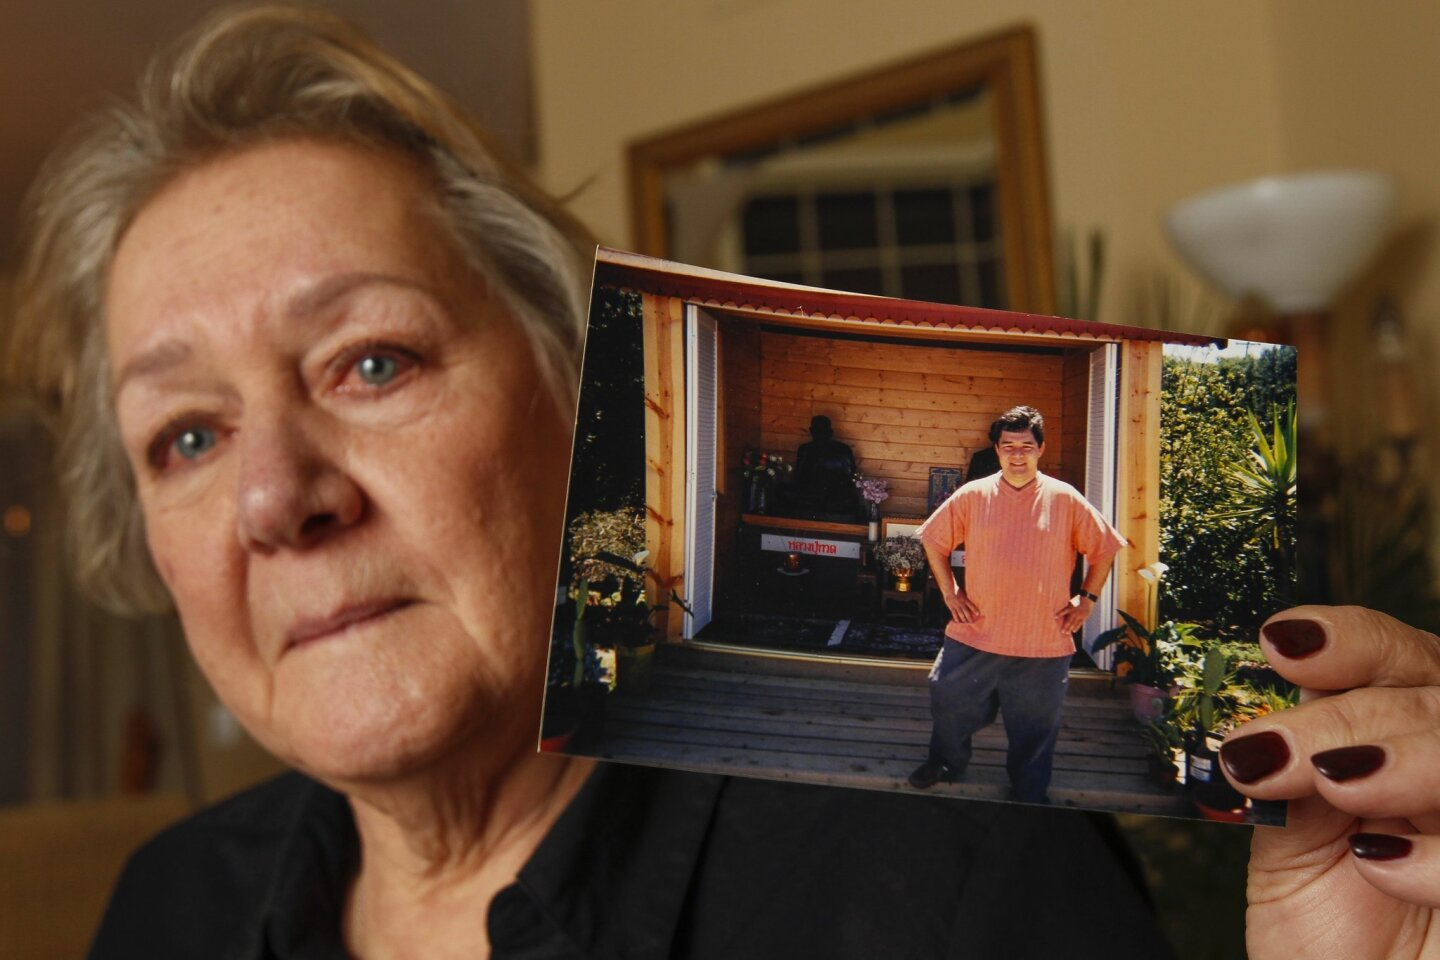 Rochelle Nishimoto, whose son Jason Nishimoto committed suicide in jail after he was arrested by police last September, holds a picture of Jason at the Thai Buddhist monastery in North County that he would regularly go to, while in her home in Vista on Tuesday.